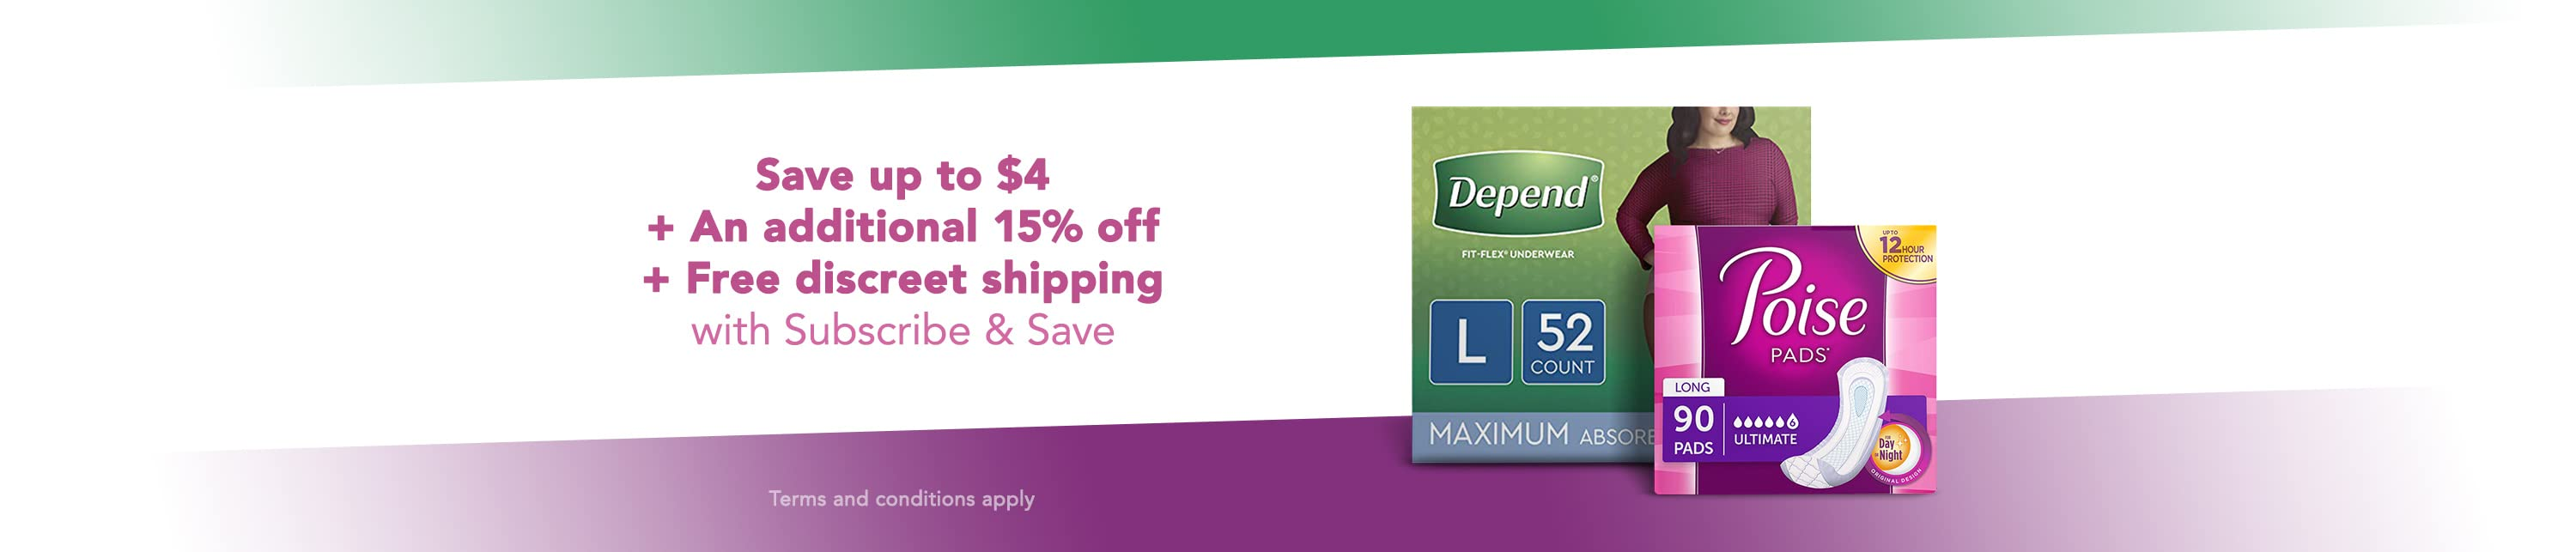 Save up to $4 plus an additional 15% off. Plus Free discreet shipping with Subscribe and Save.  Terms and conditions apply.